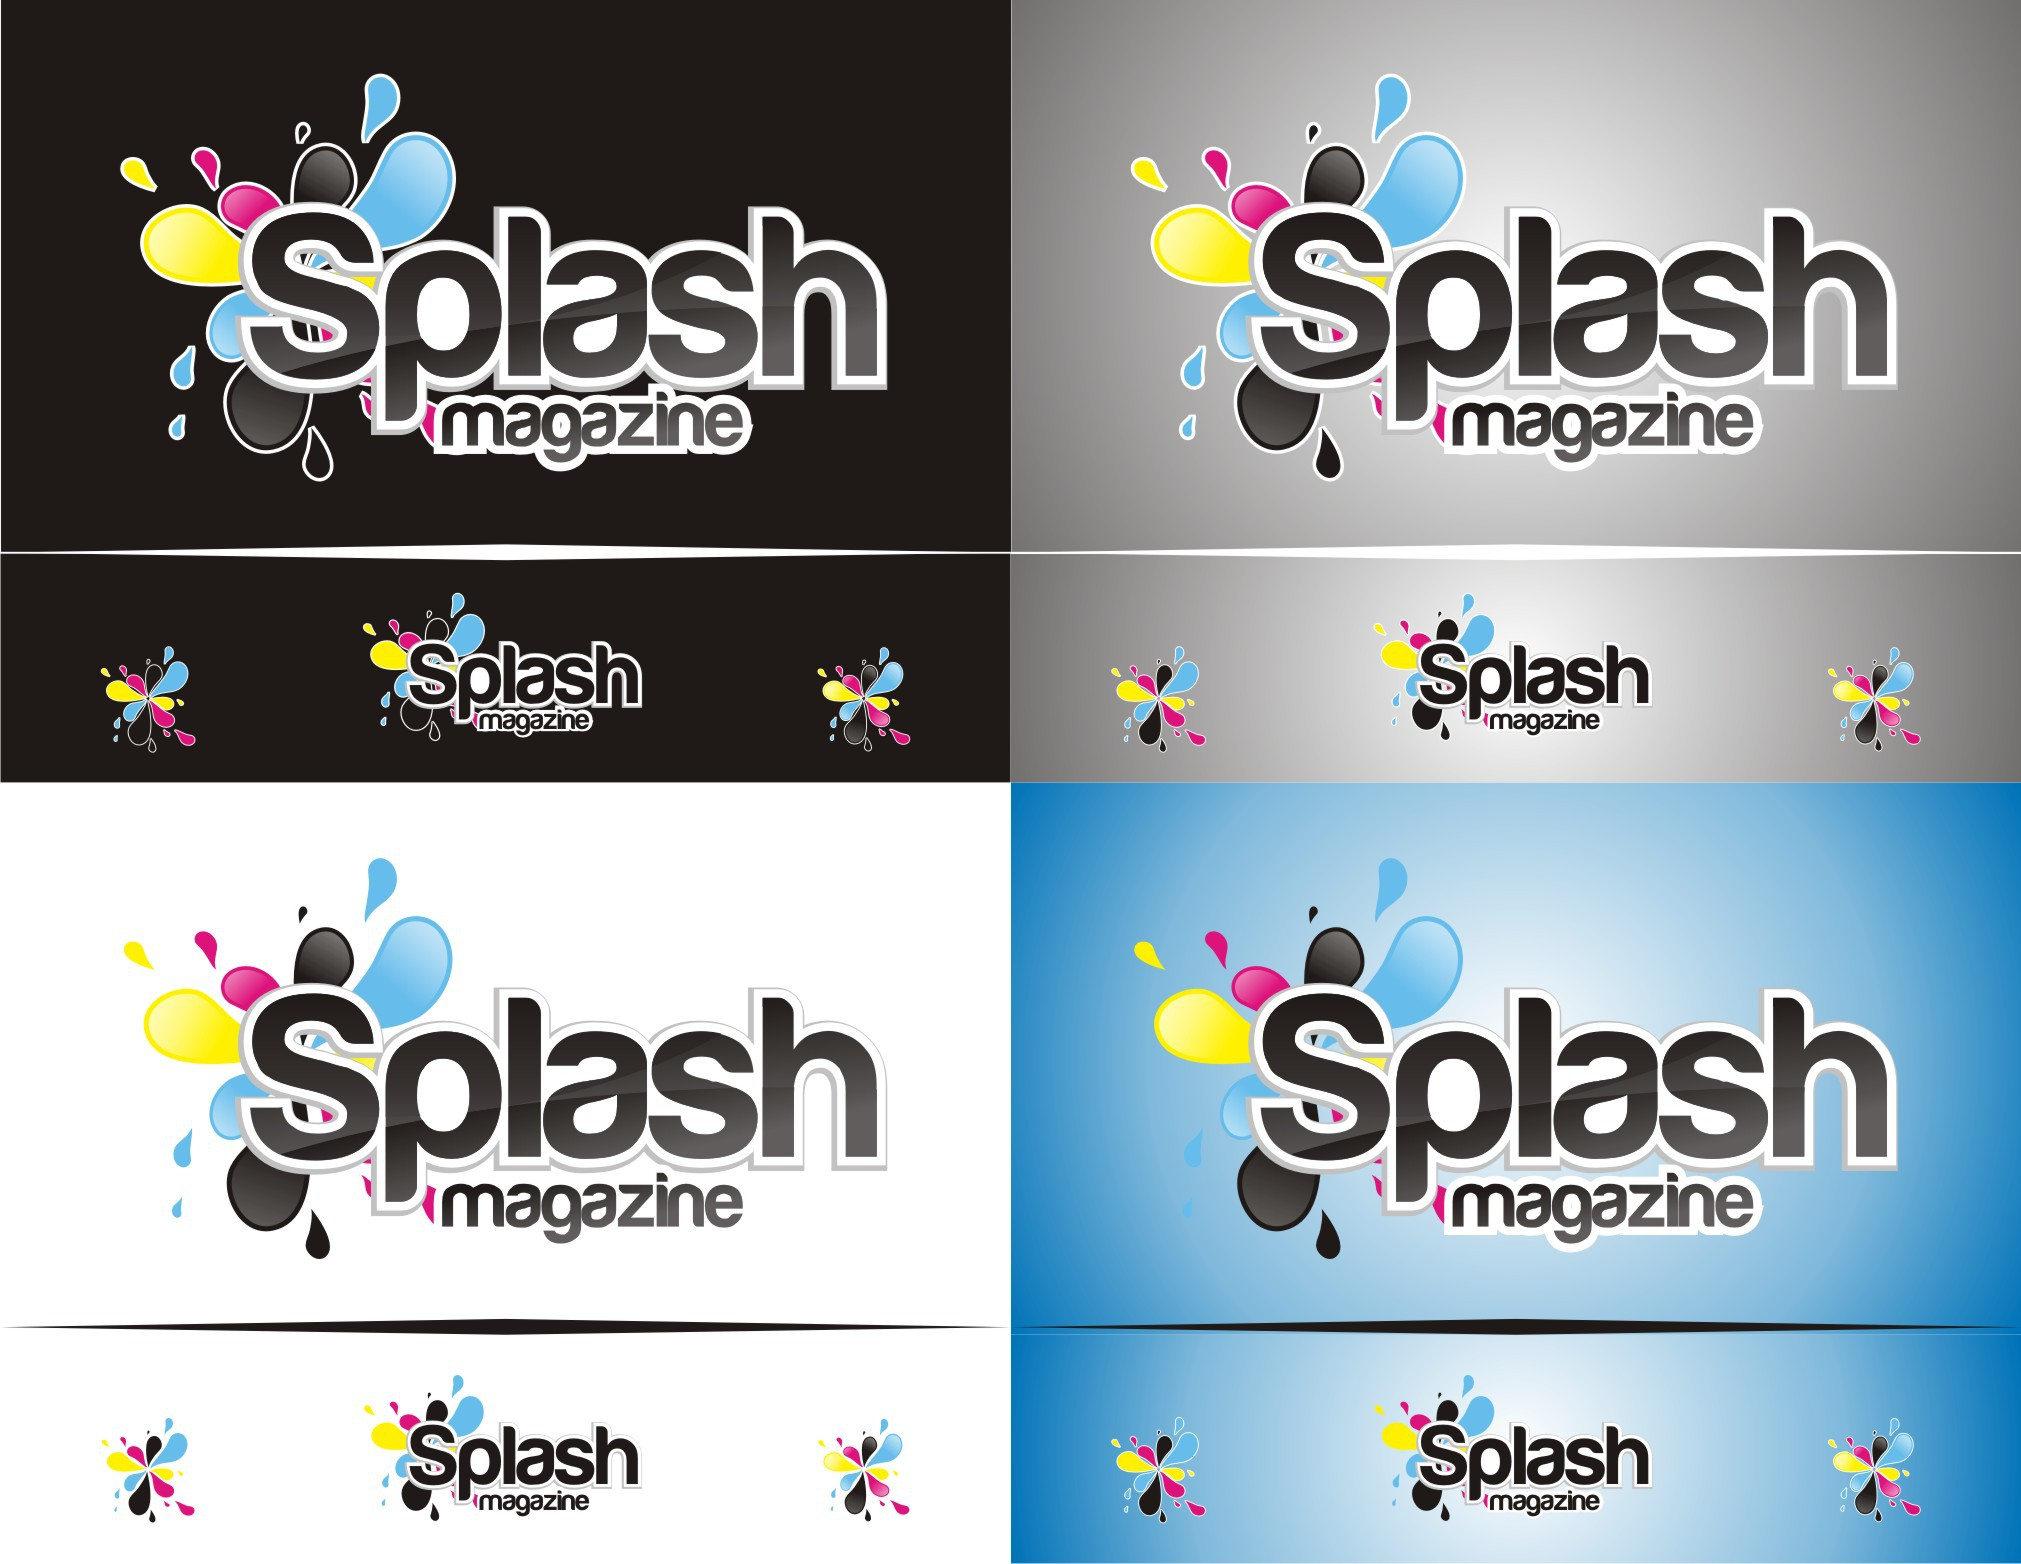 Create the next logo for Splashmagazine